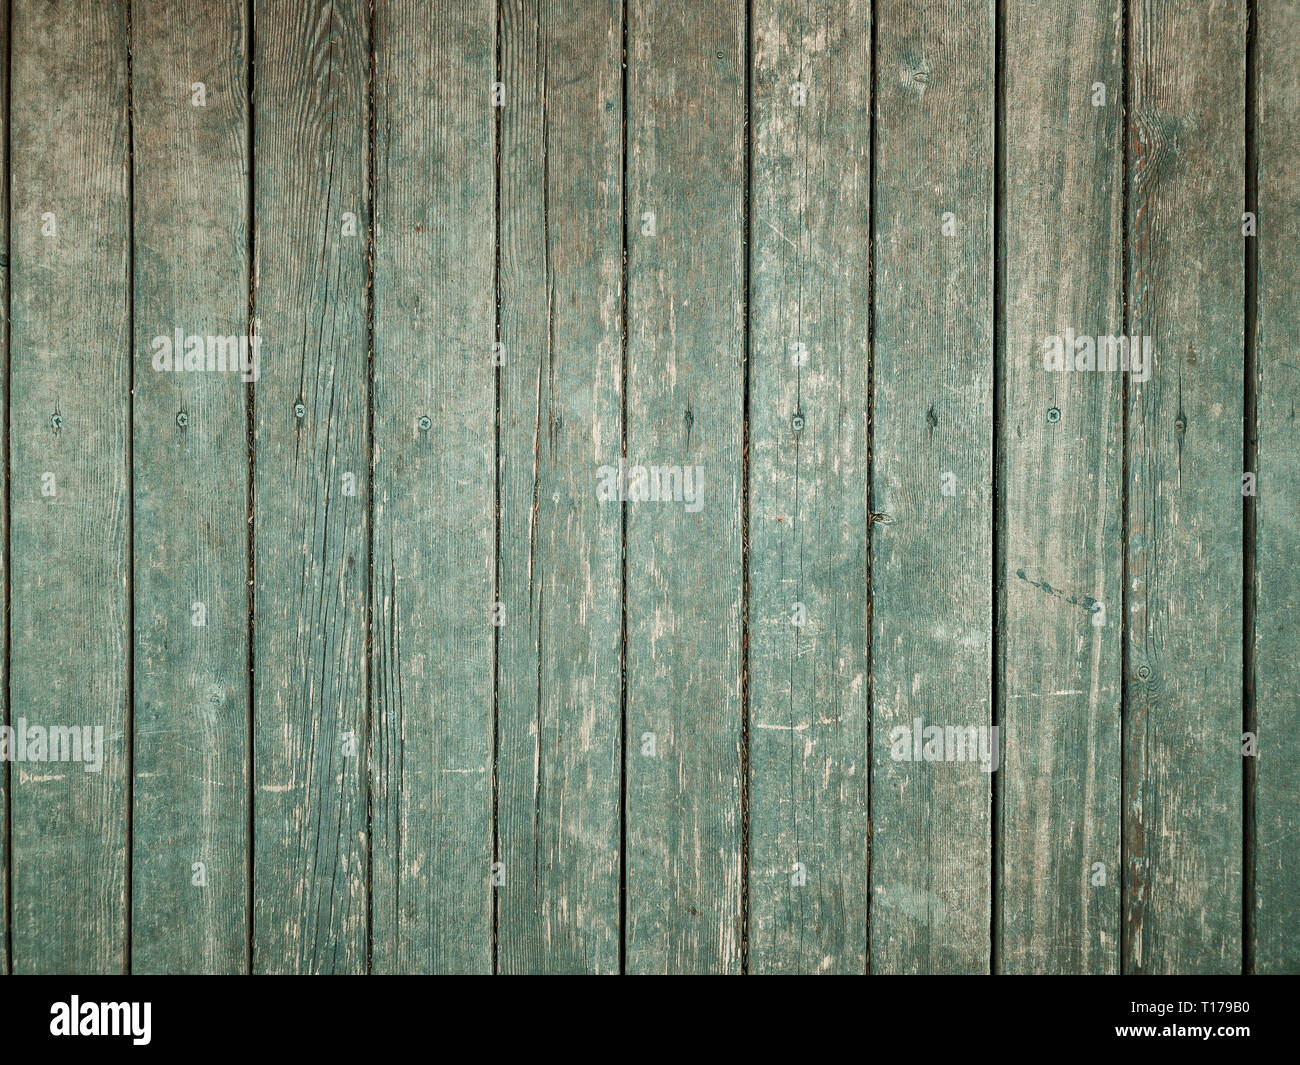 Wooden Cartoon Fence Photos Wooden Cartoon Fence Images Alamy